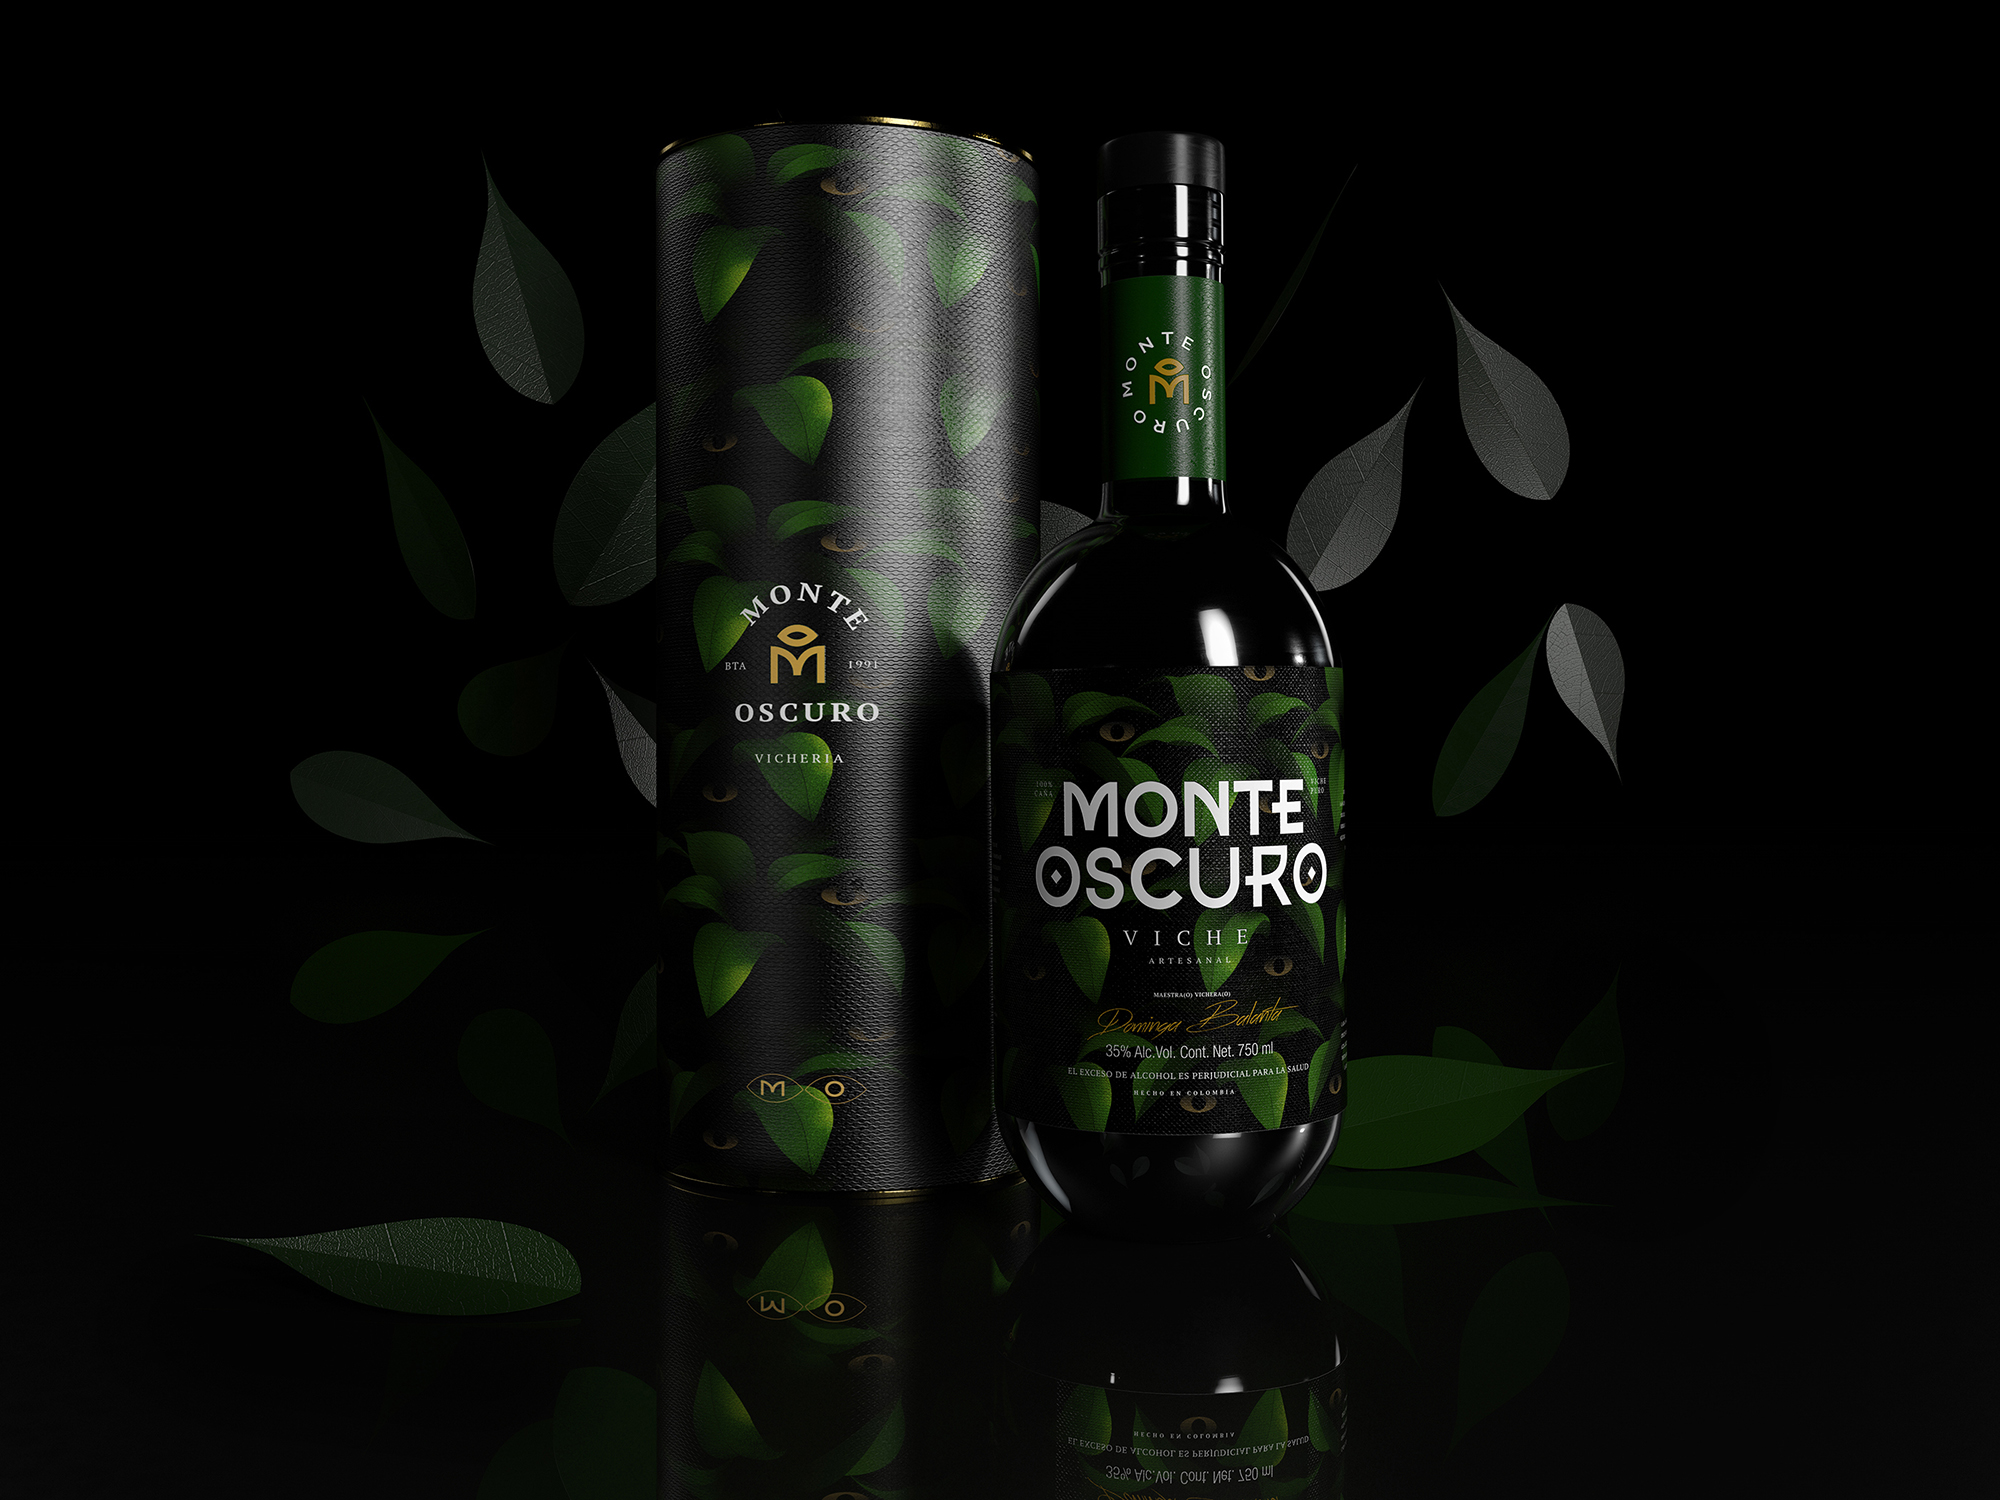 Mystical and Ancestral Monte Oscuro Branding by Venttura Studio